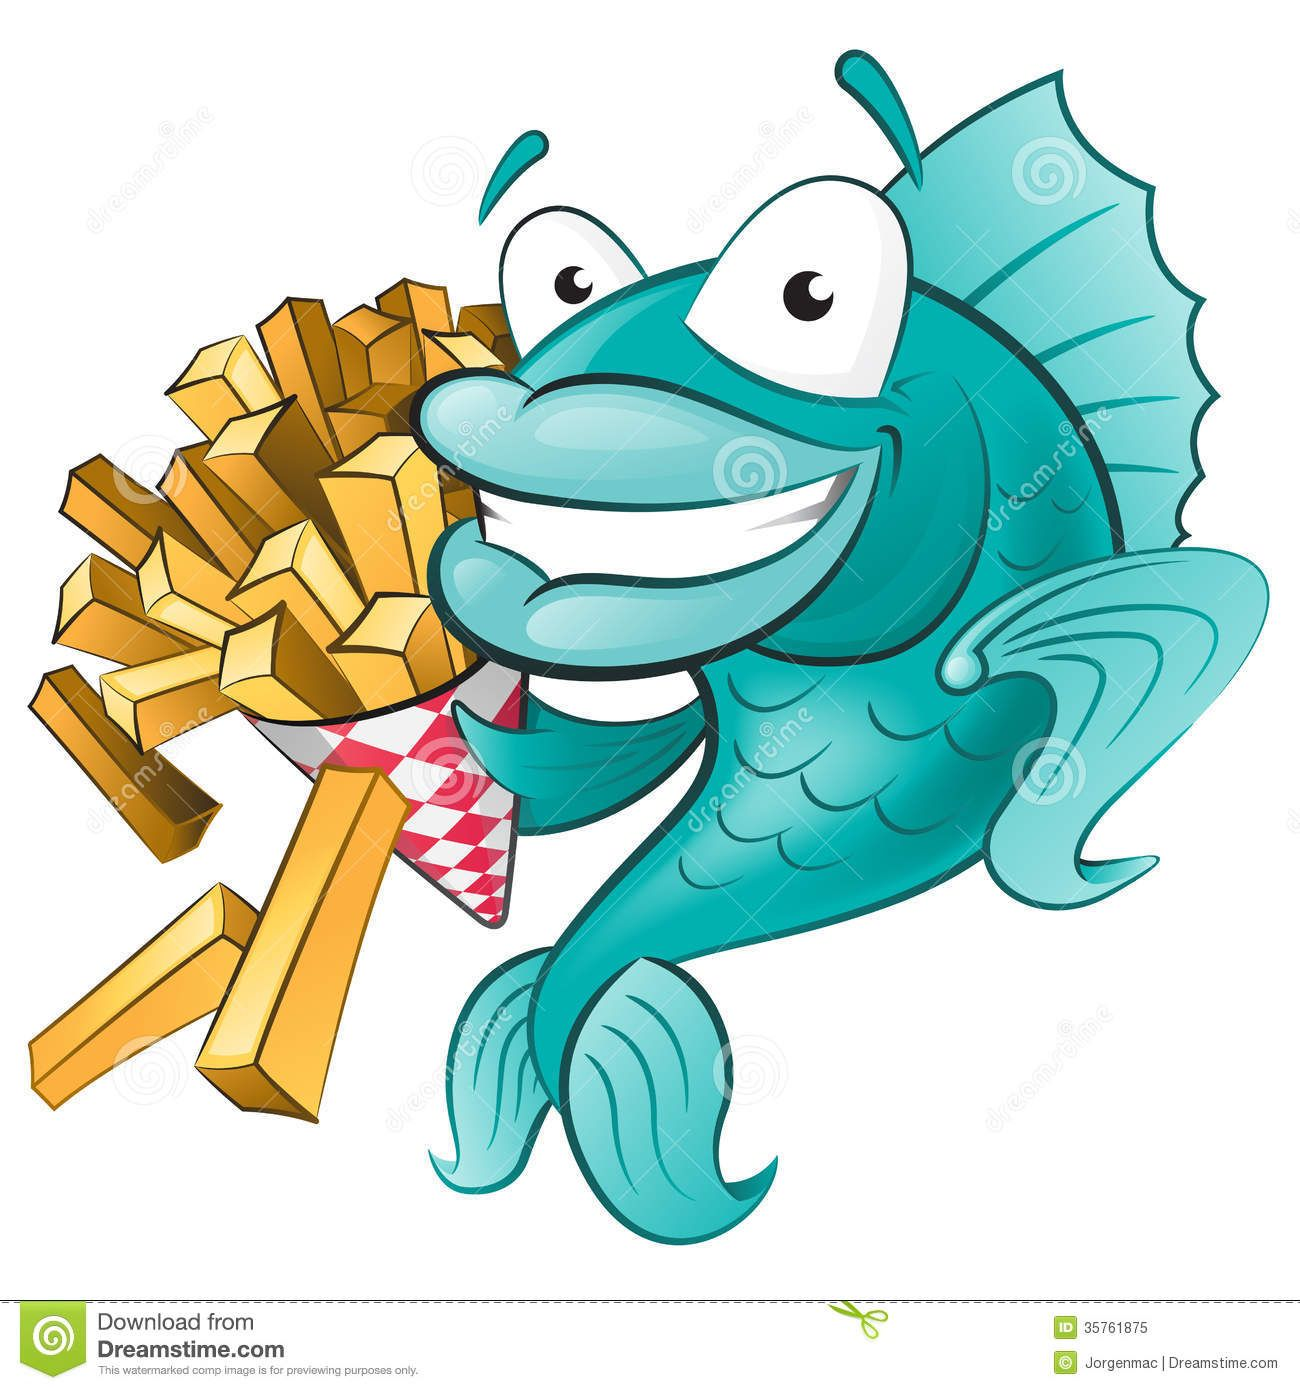 fish and chips clip art.